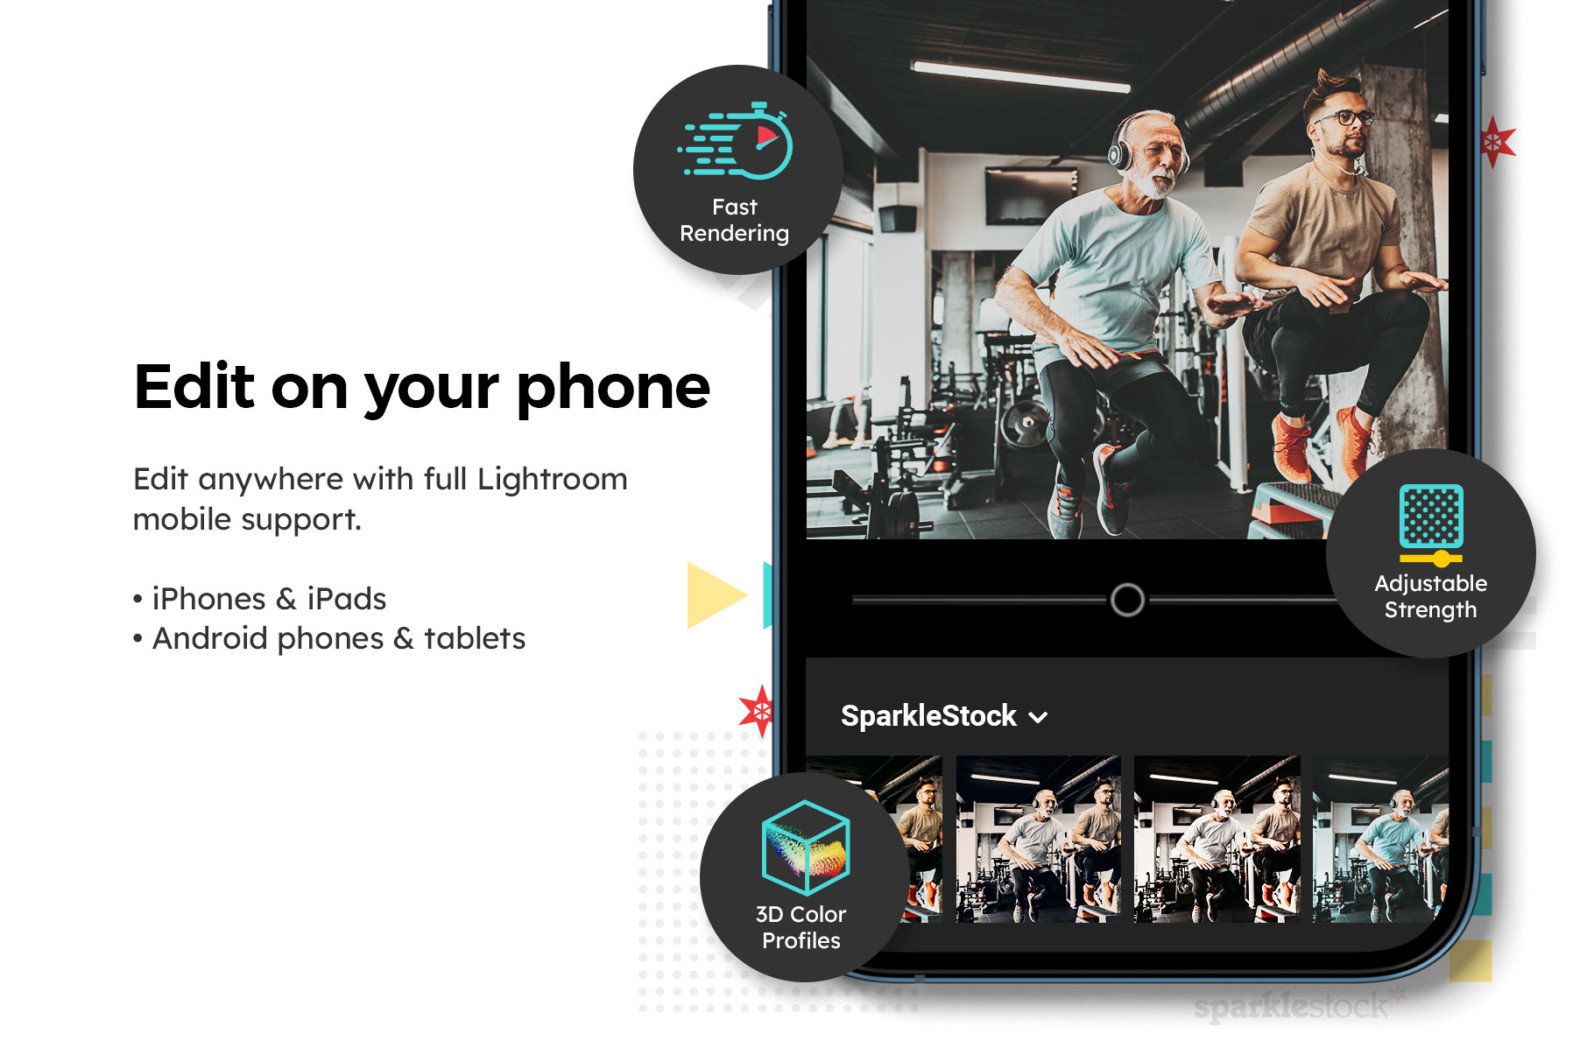 20 Workout Lightroom Presets and LUTs - 07 1 43 -